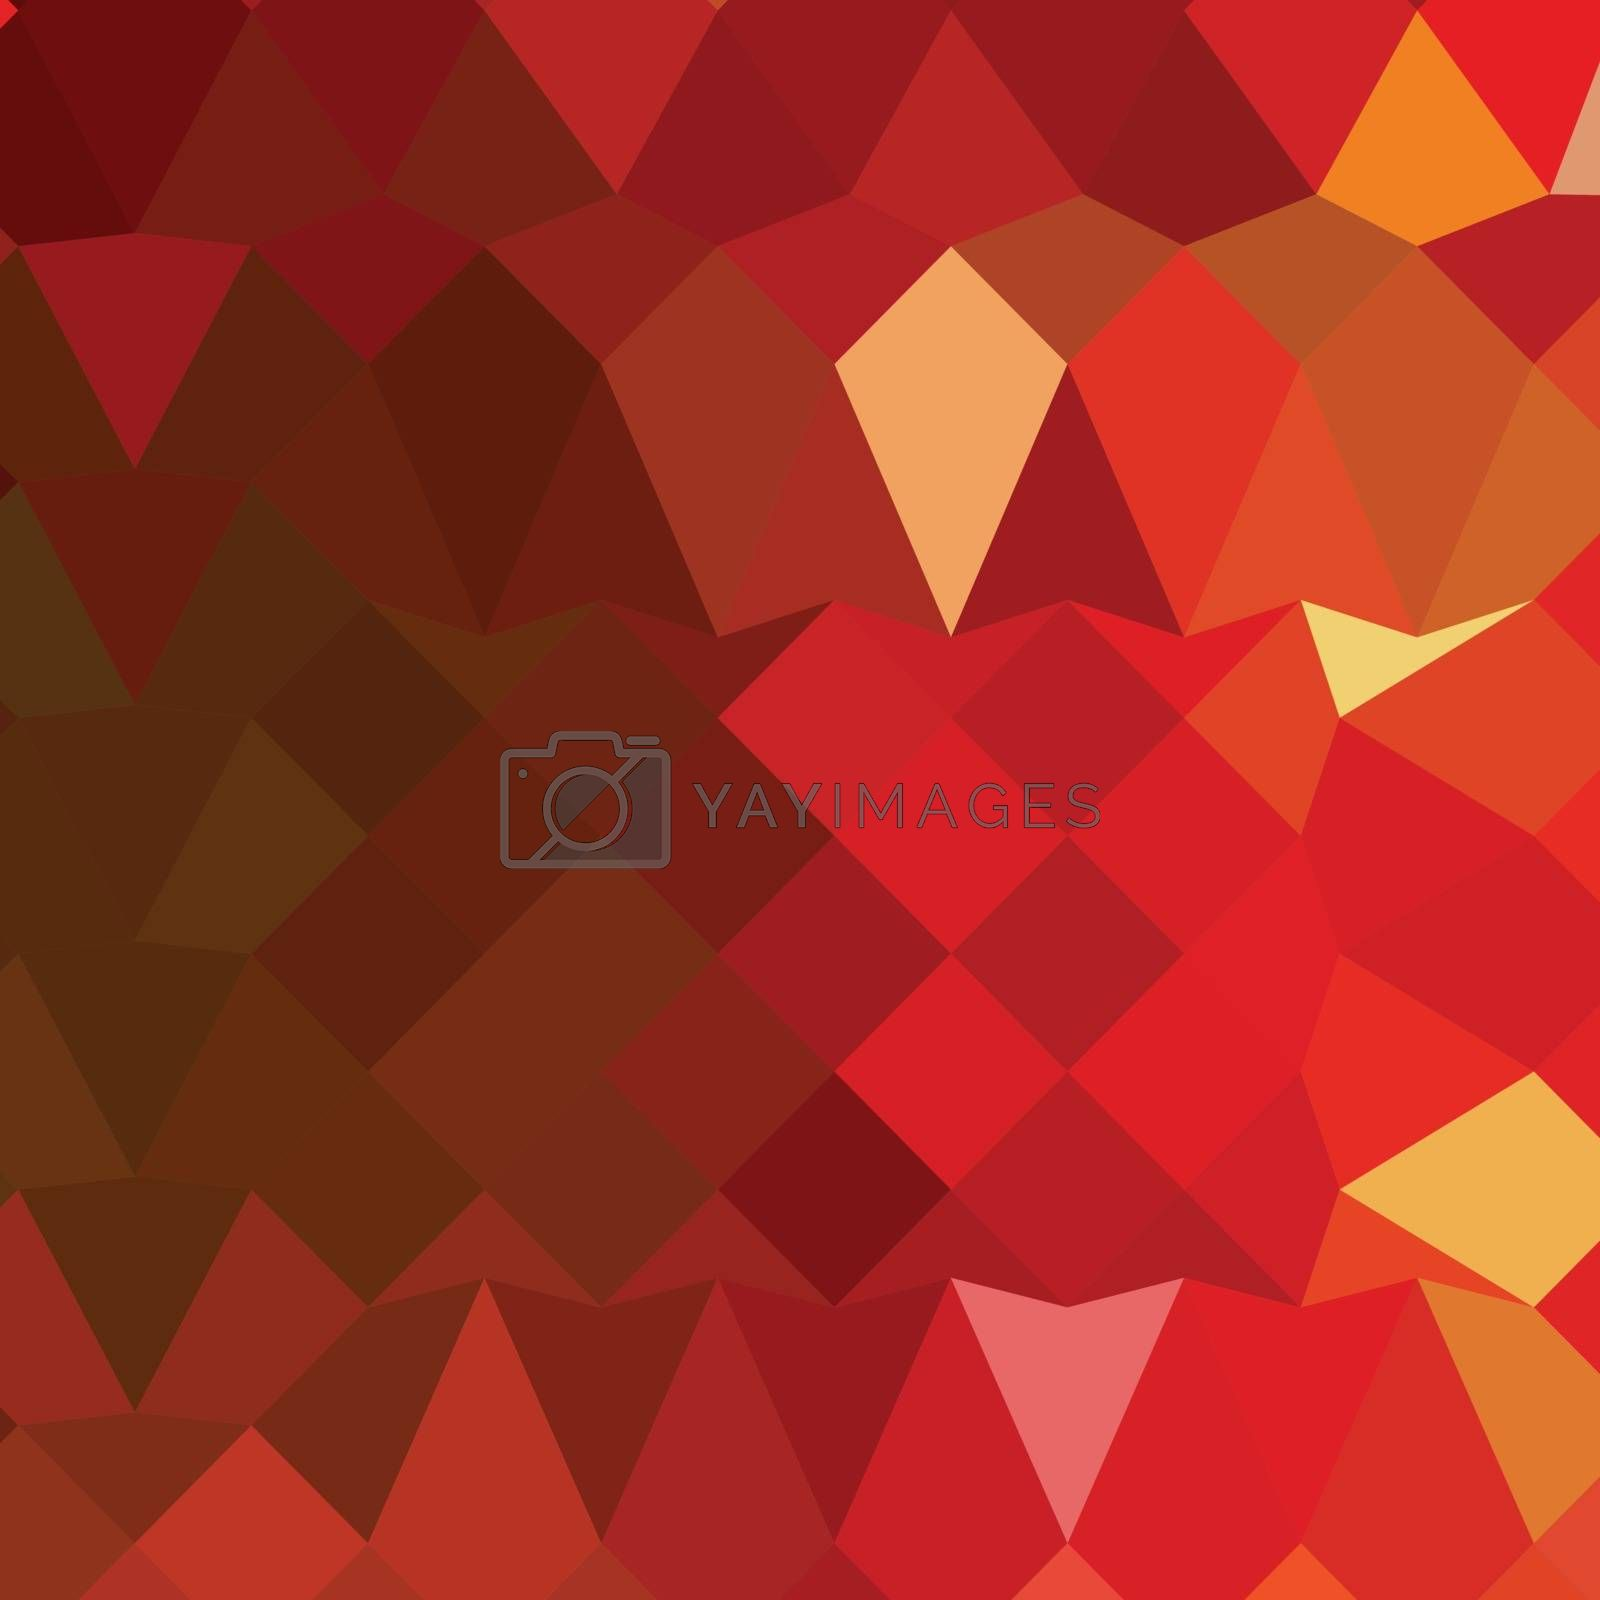 Low polygon style illustration of incardine red abstract geometric background.